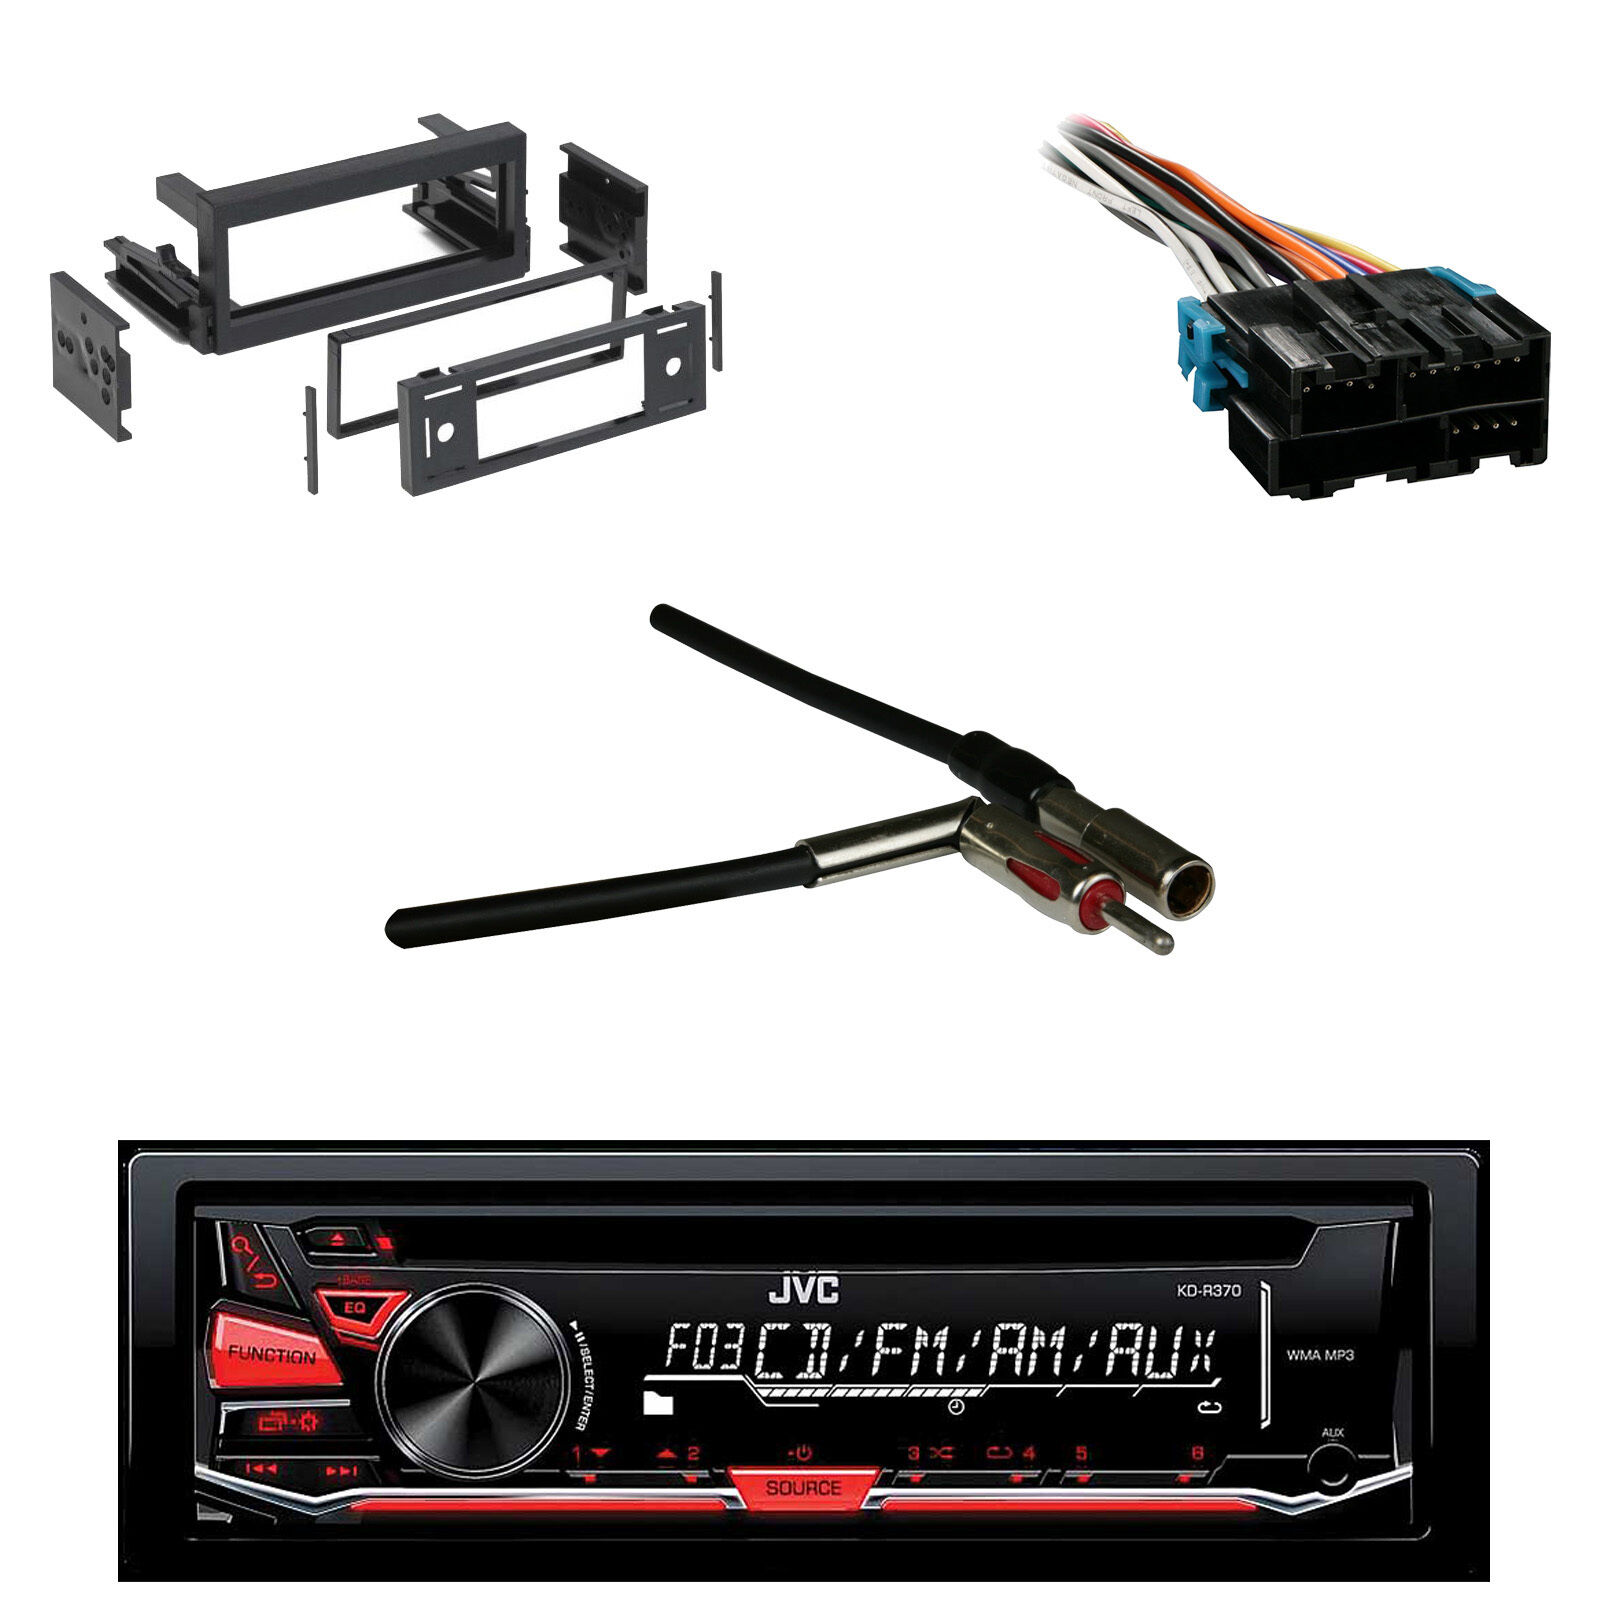 s l1600 jvc cd am fm aux receiver gm wire harness dash kit metra antenna Car Stereo Wiring at panicattacktreatment.co